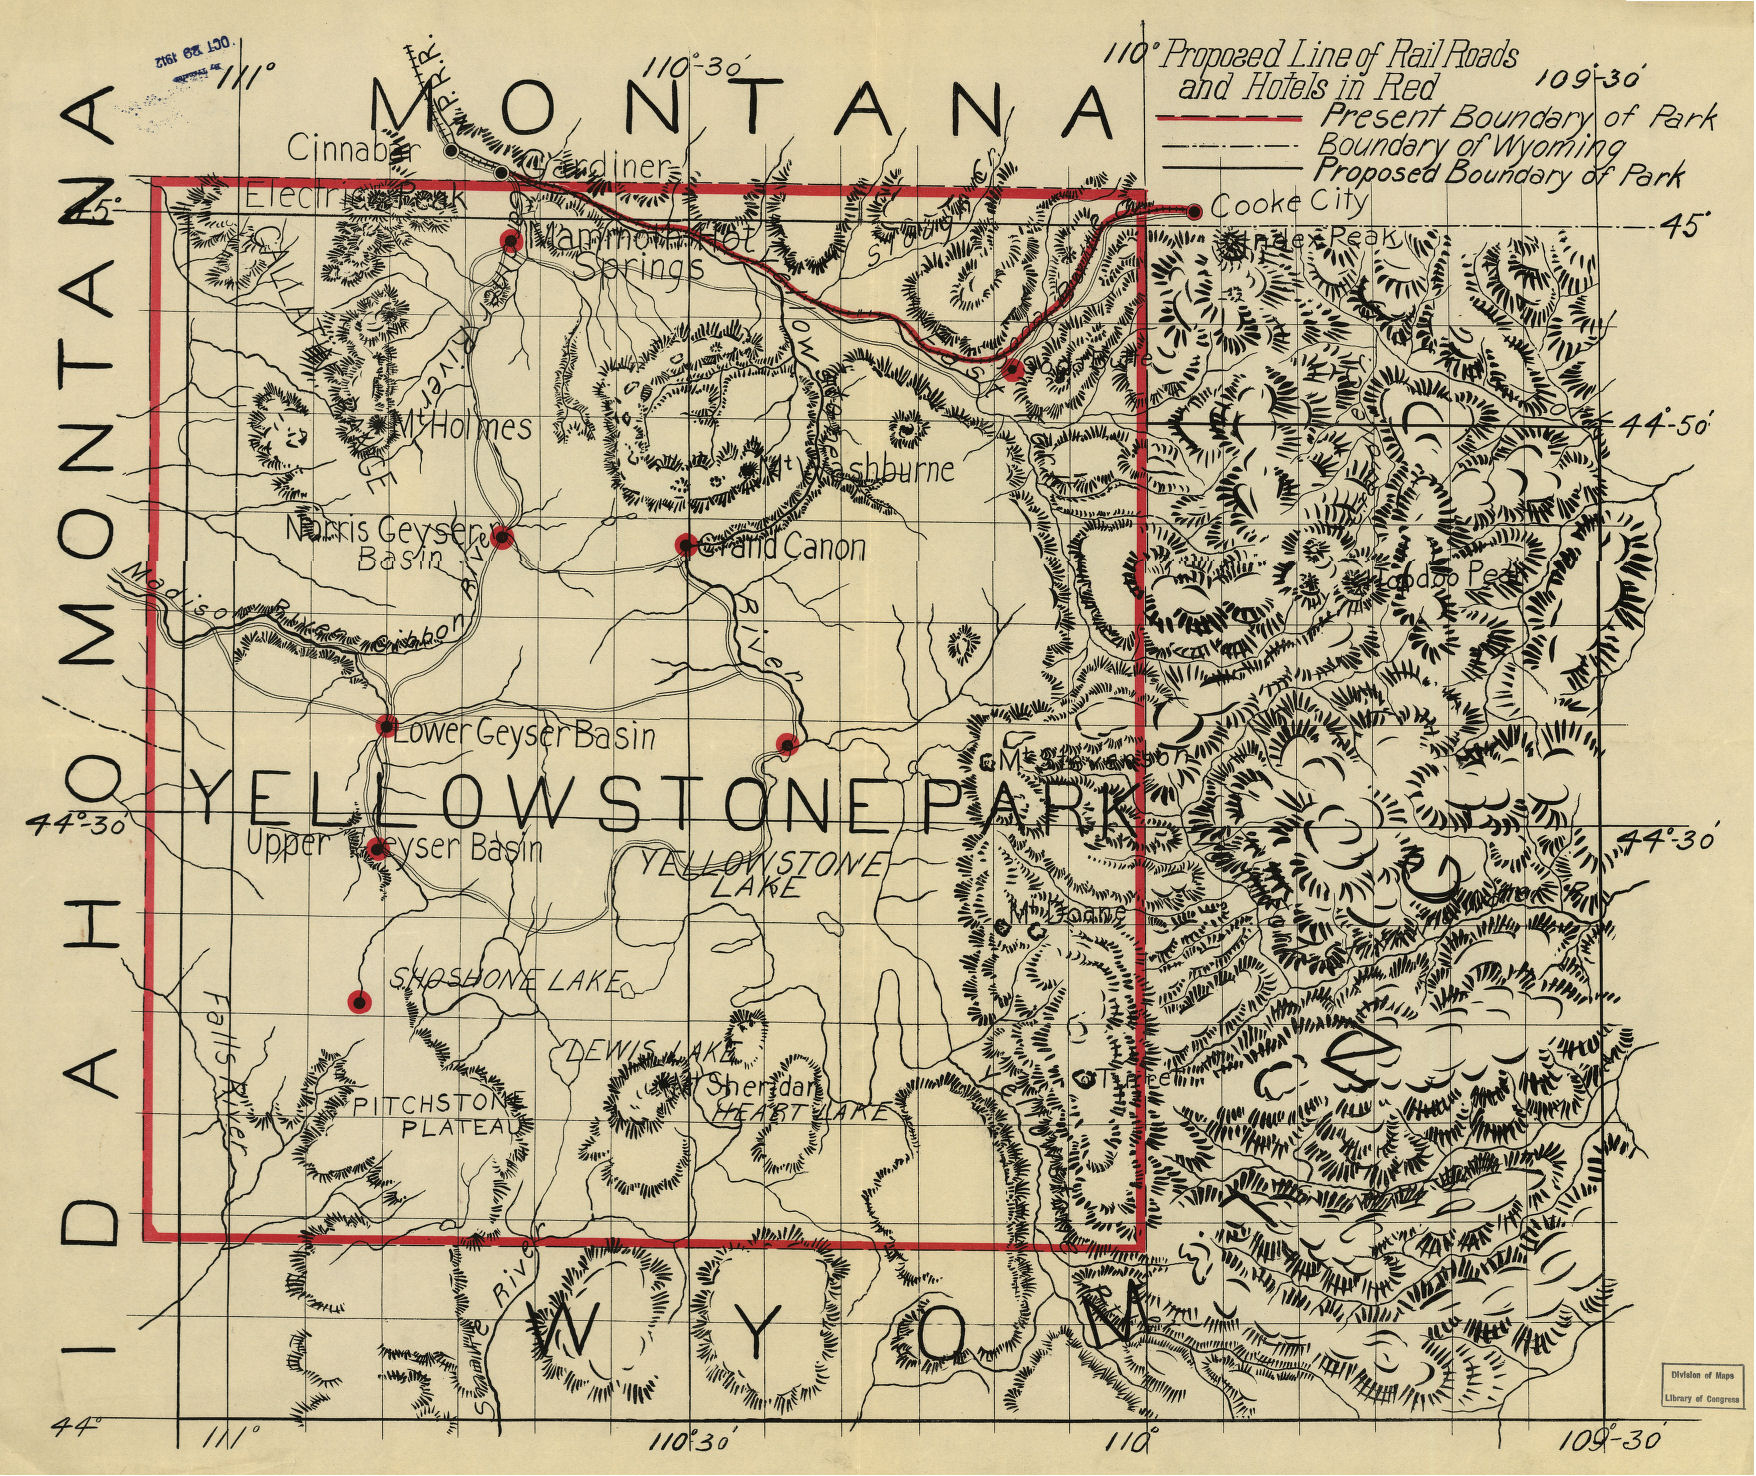 Yellowstone National Park 1912 Rail and Hotel Map from the Library of Congress Collection